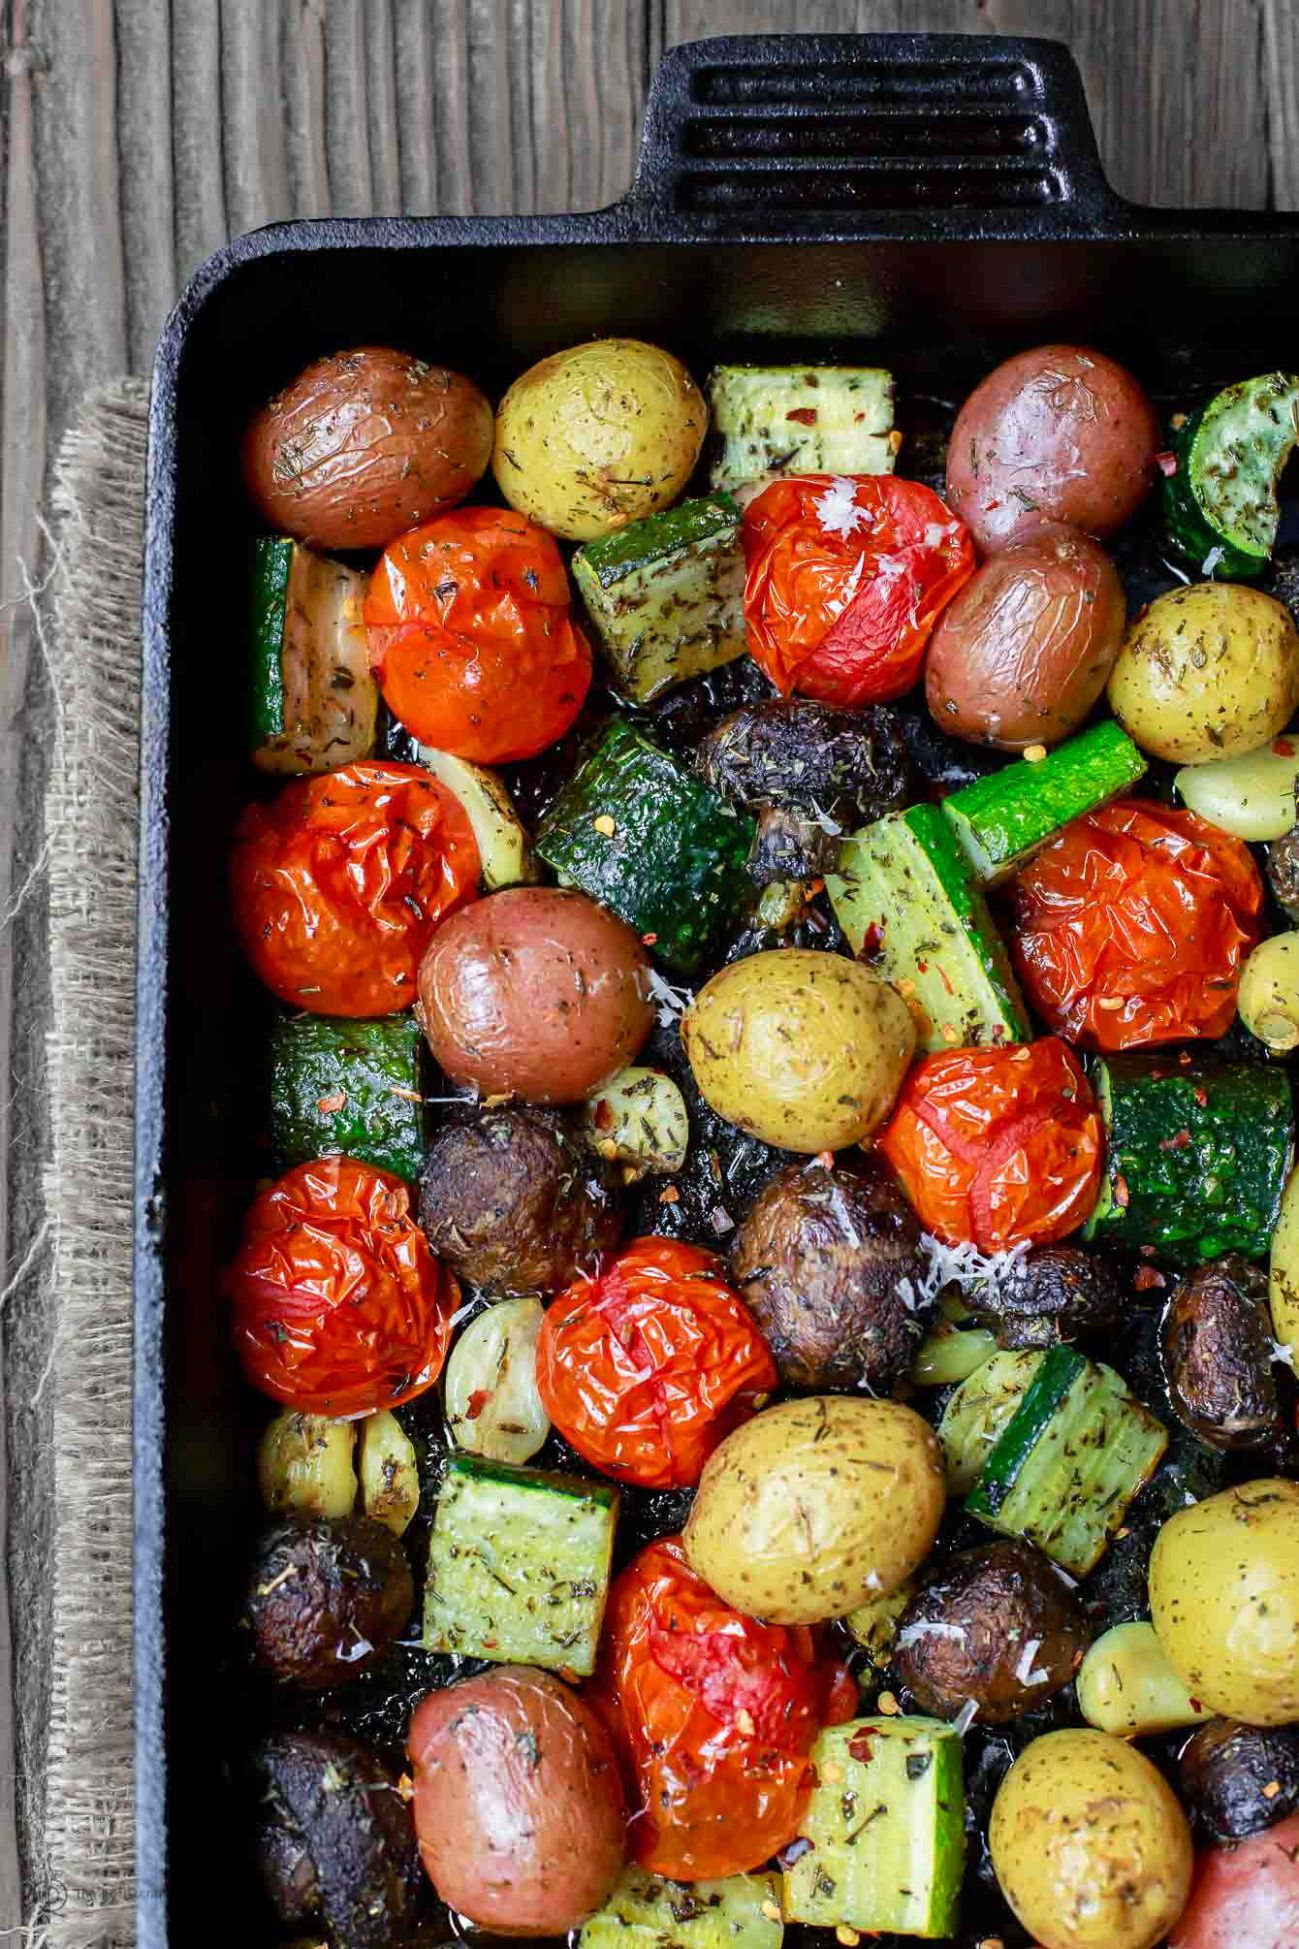 Italian Oven Roasted Vegetables - Recipes Vegetables Oven